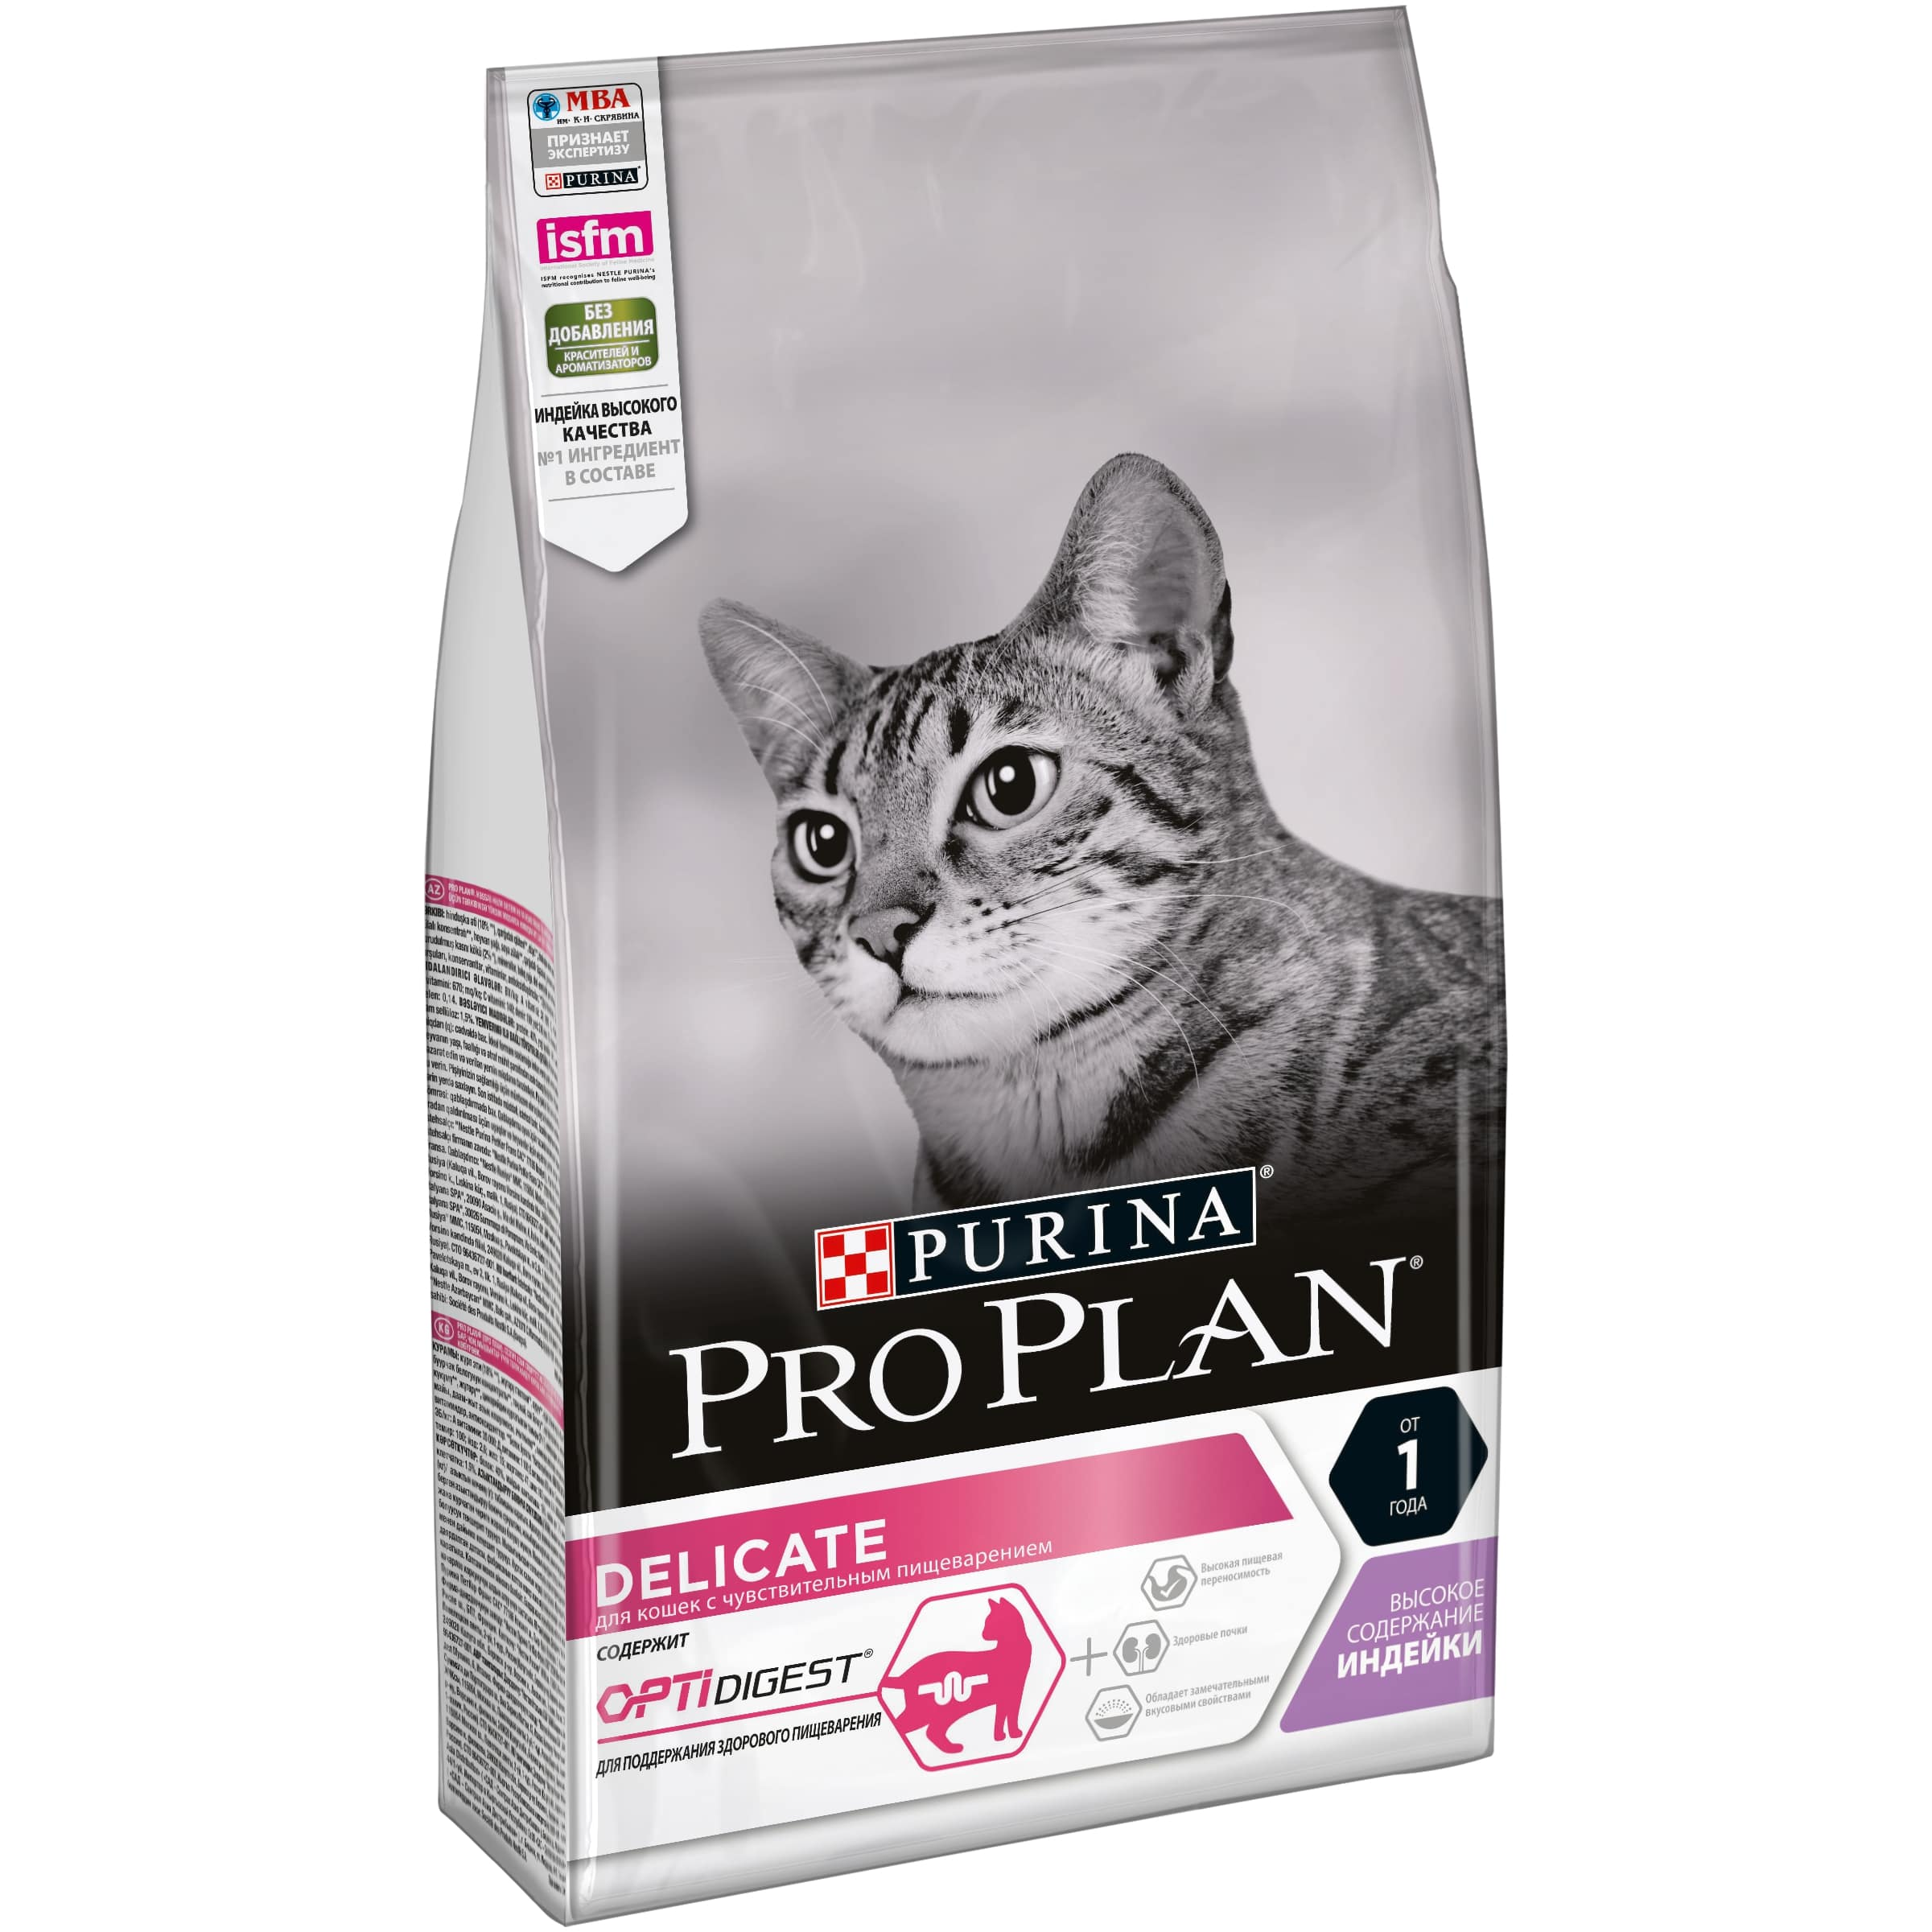 Pro Plan dry food for cats with sensitive digestion and choosy to eat, with turkey, Package, 1.5 kg цена